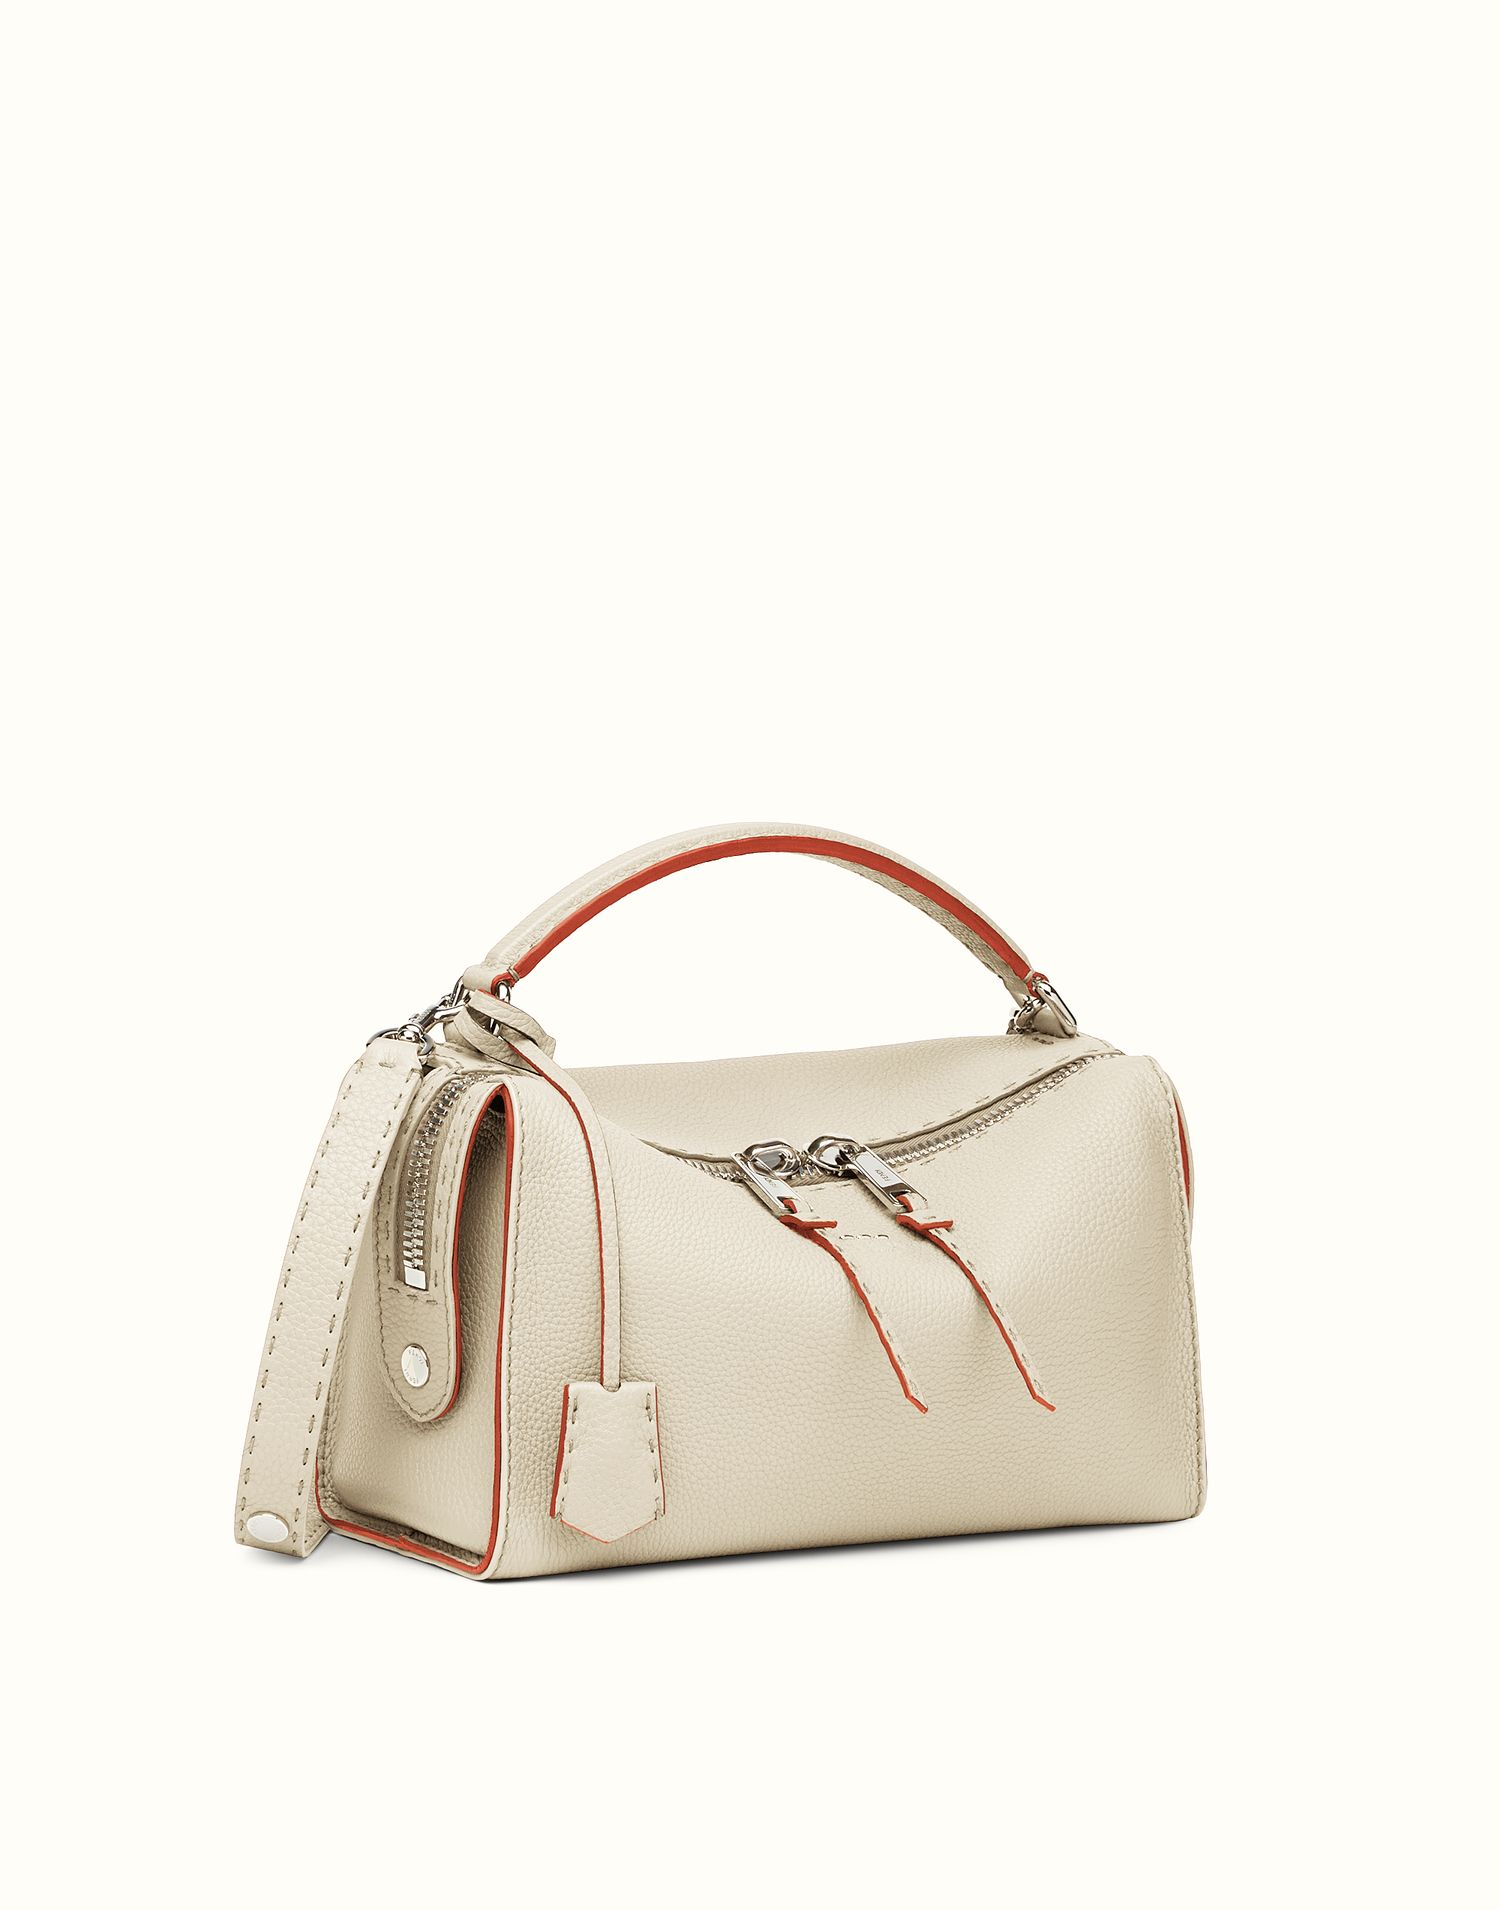 FENDI | LEI SELLERIA white Roman leather Boston bag ...